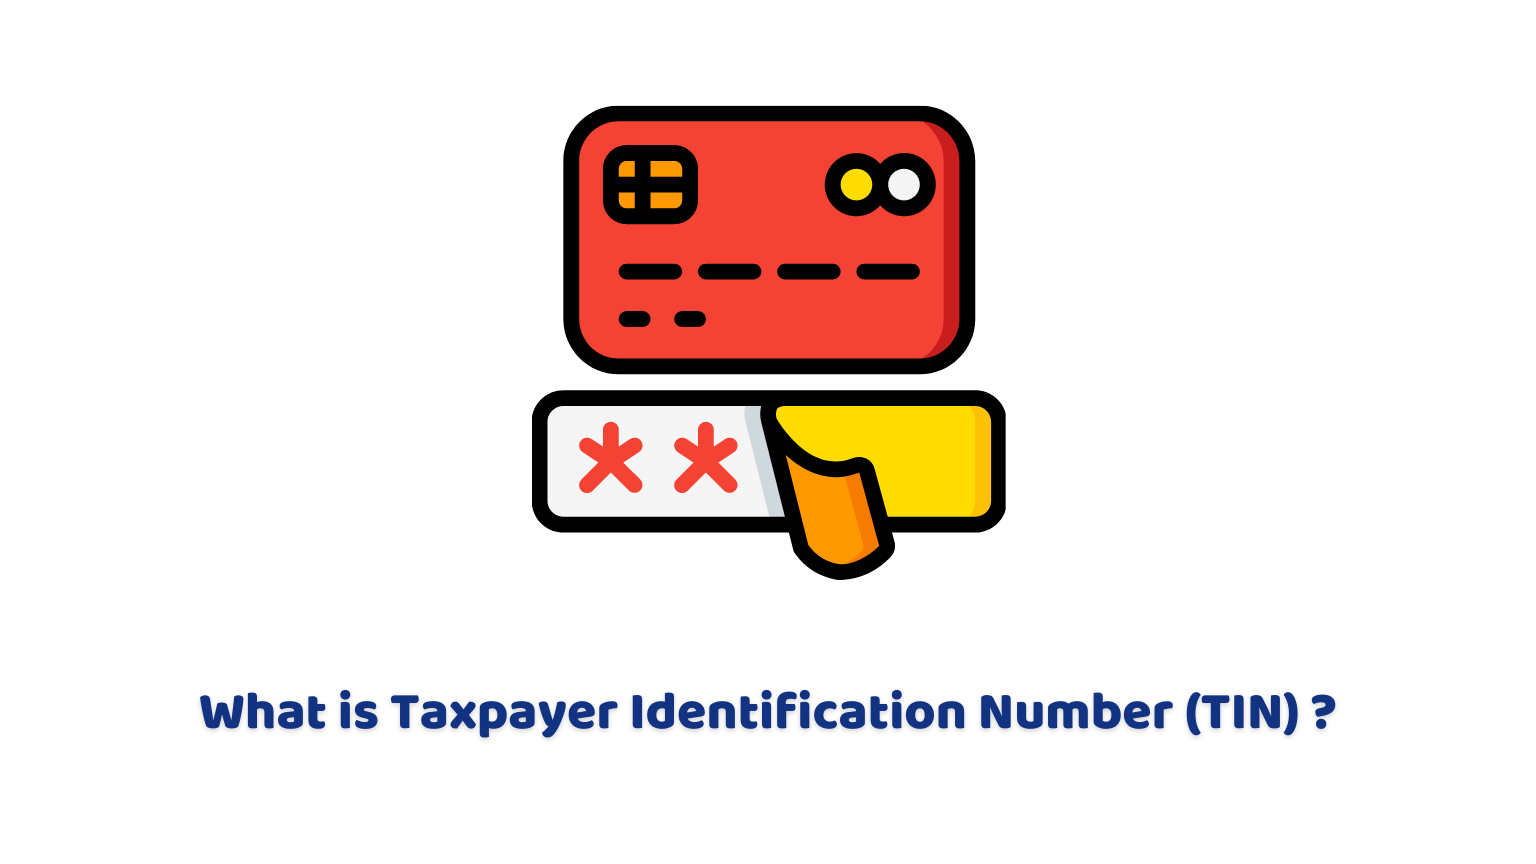 taxpayer identification number